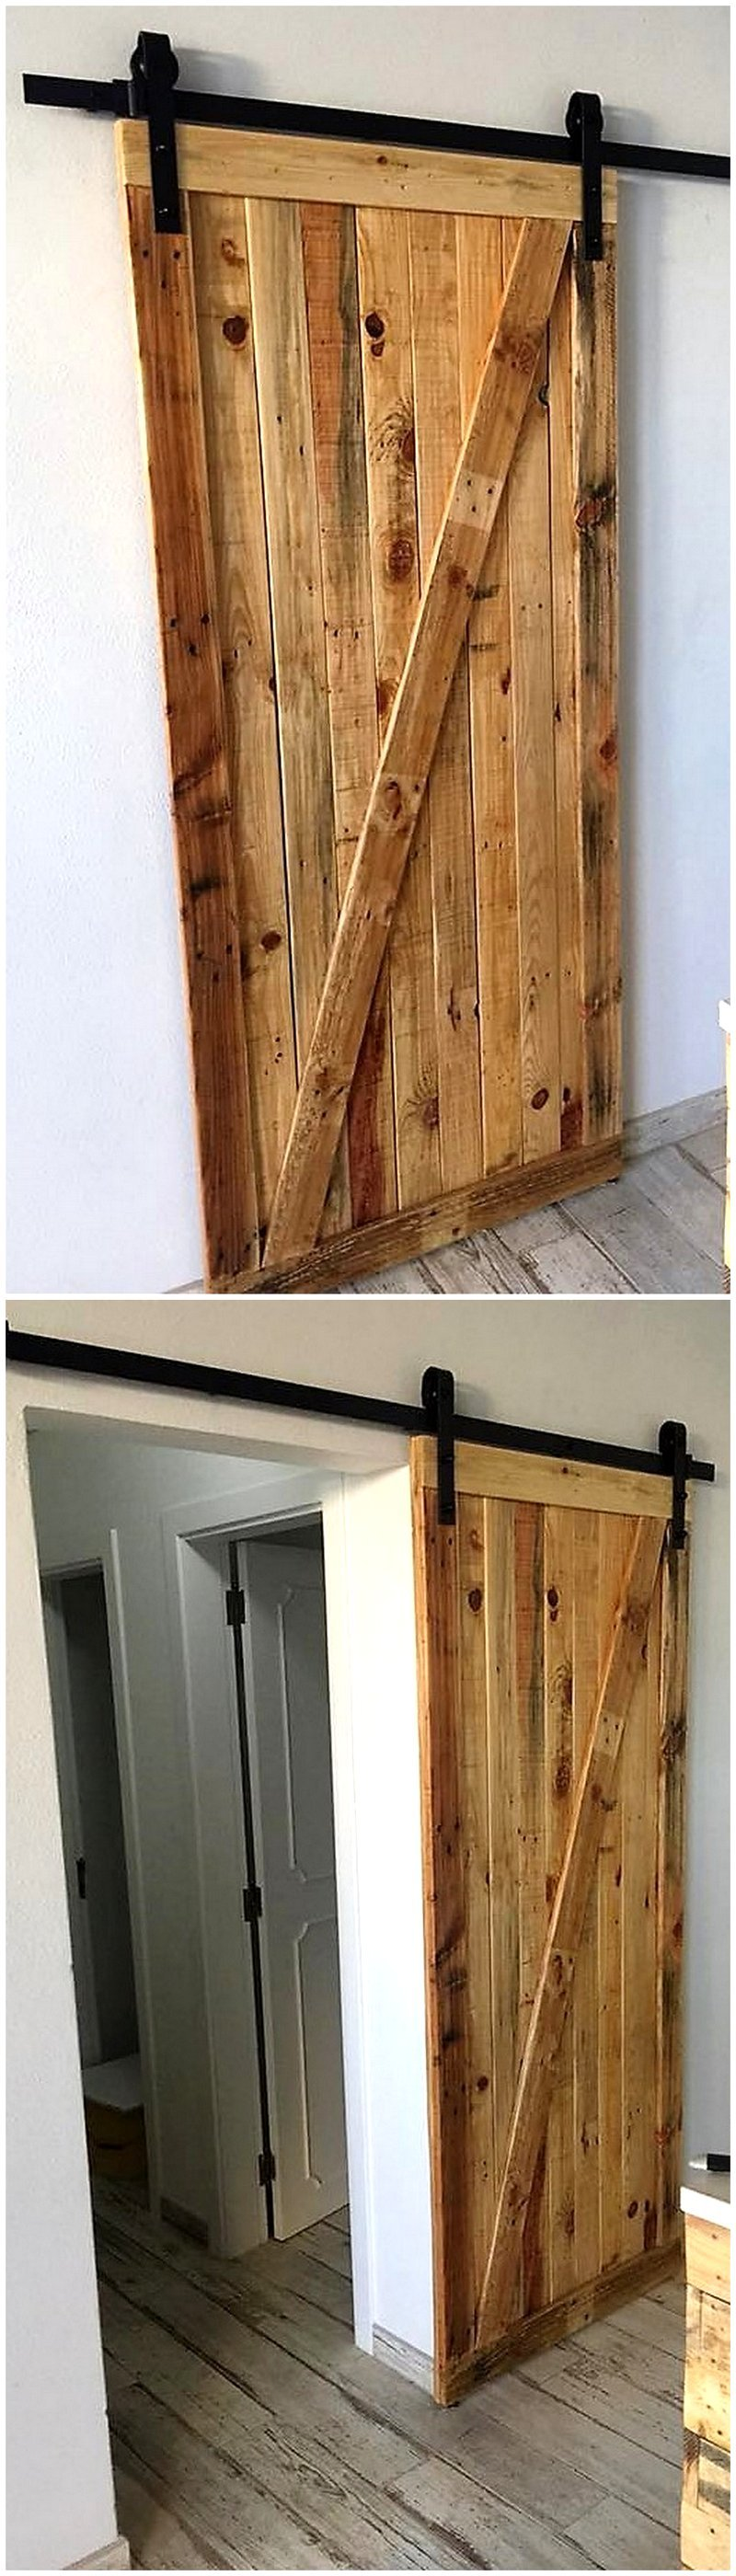 pallet sliding door plan